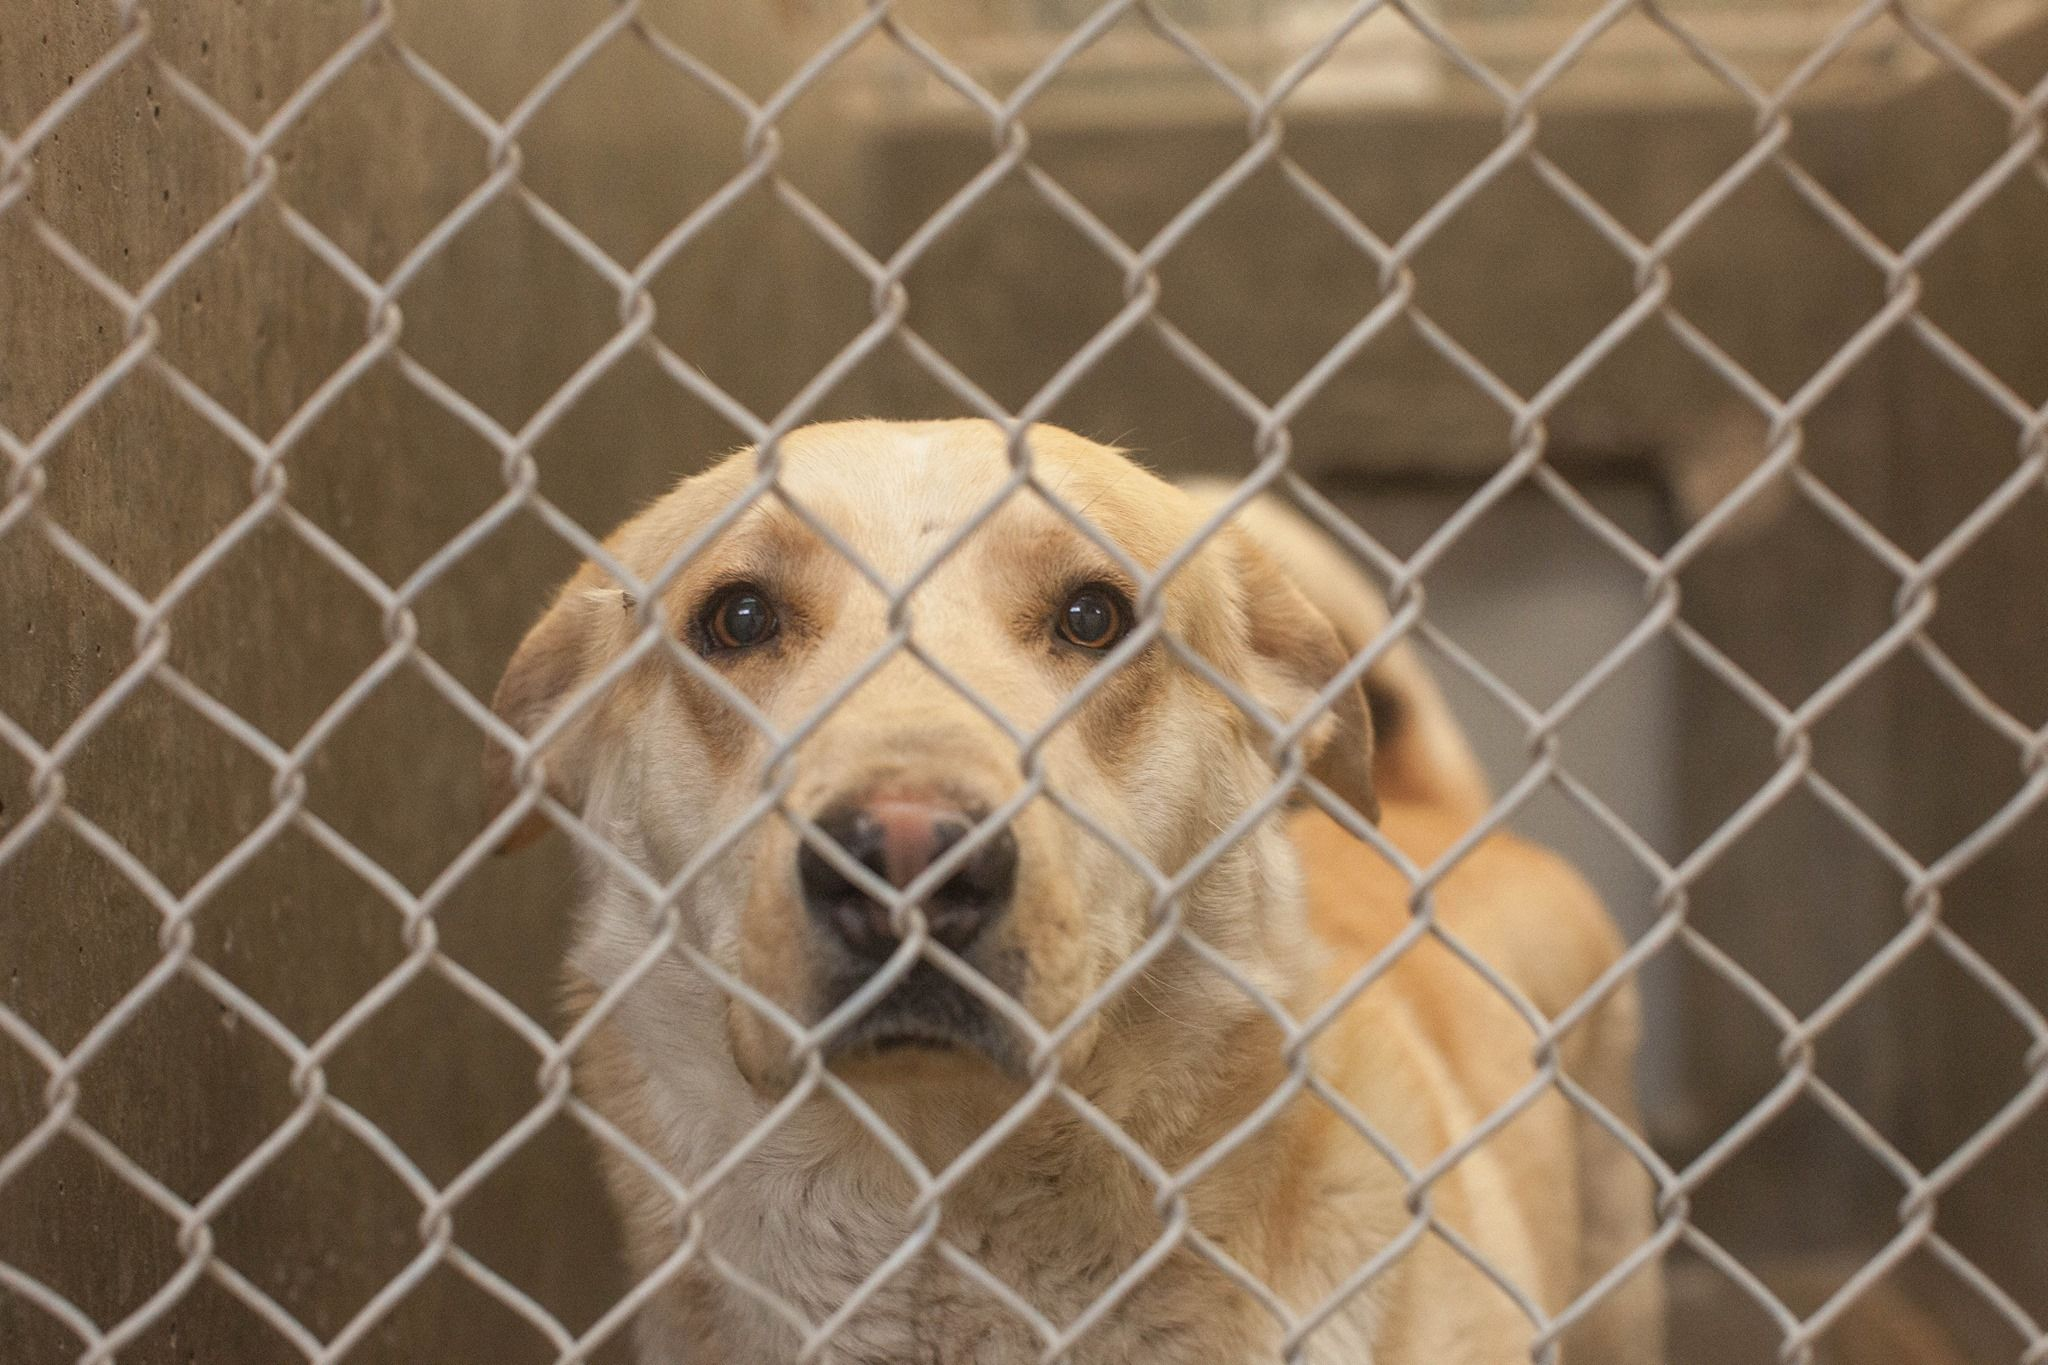 Lovables: ****URGENT OUT OF TIME****Please adopt!!  Lab mix male 1-2 years old Kennel A1 *****$51 to Adopt.  This guy is begging to get out.  Located at Odessa, Texas Animal Control FOSTERS NEEDED! OUT OF STATE TRANSPORT CAN BE ARRANGED FOR ADOPTERS! https://www.facebook.com/speakingupforthosewhocant/photos/a.248402621850650.69312.248355401855372/739699926054248/?type=1&theater